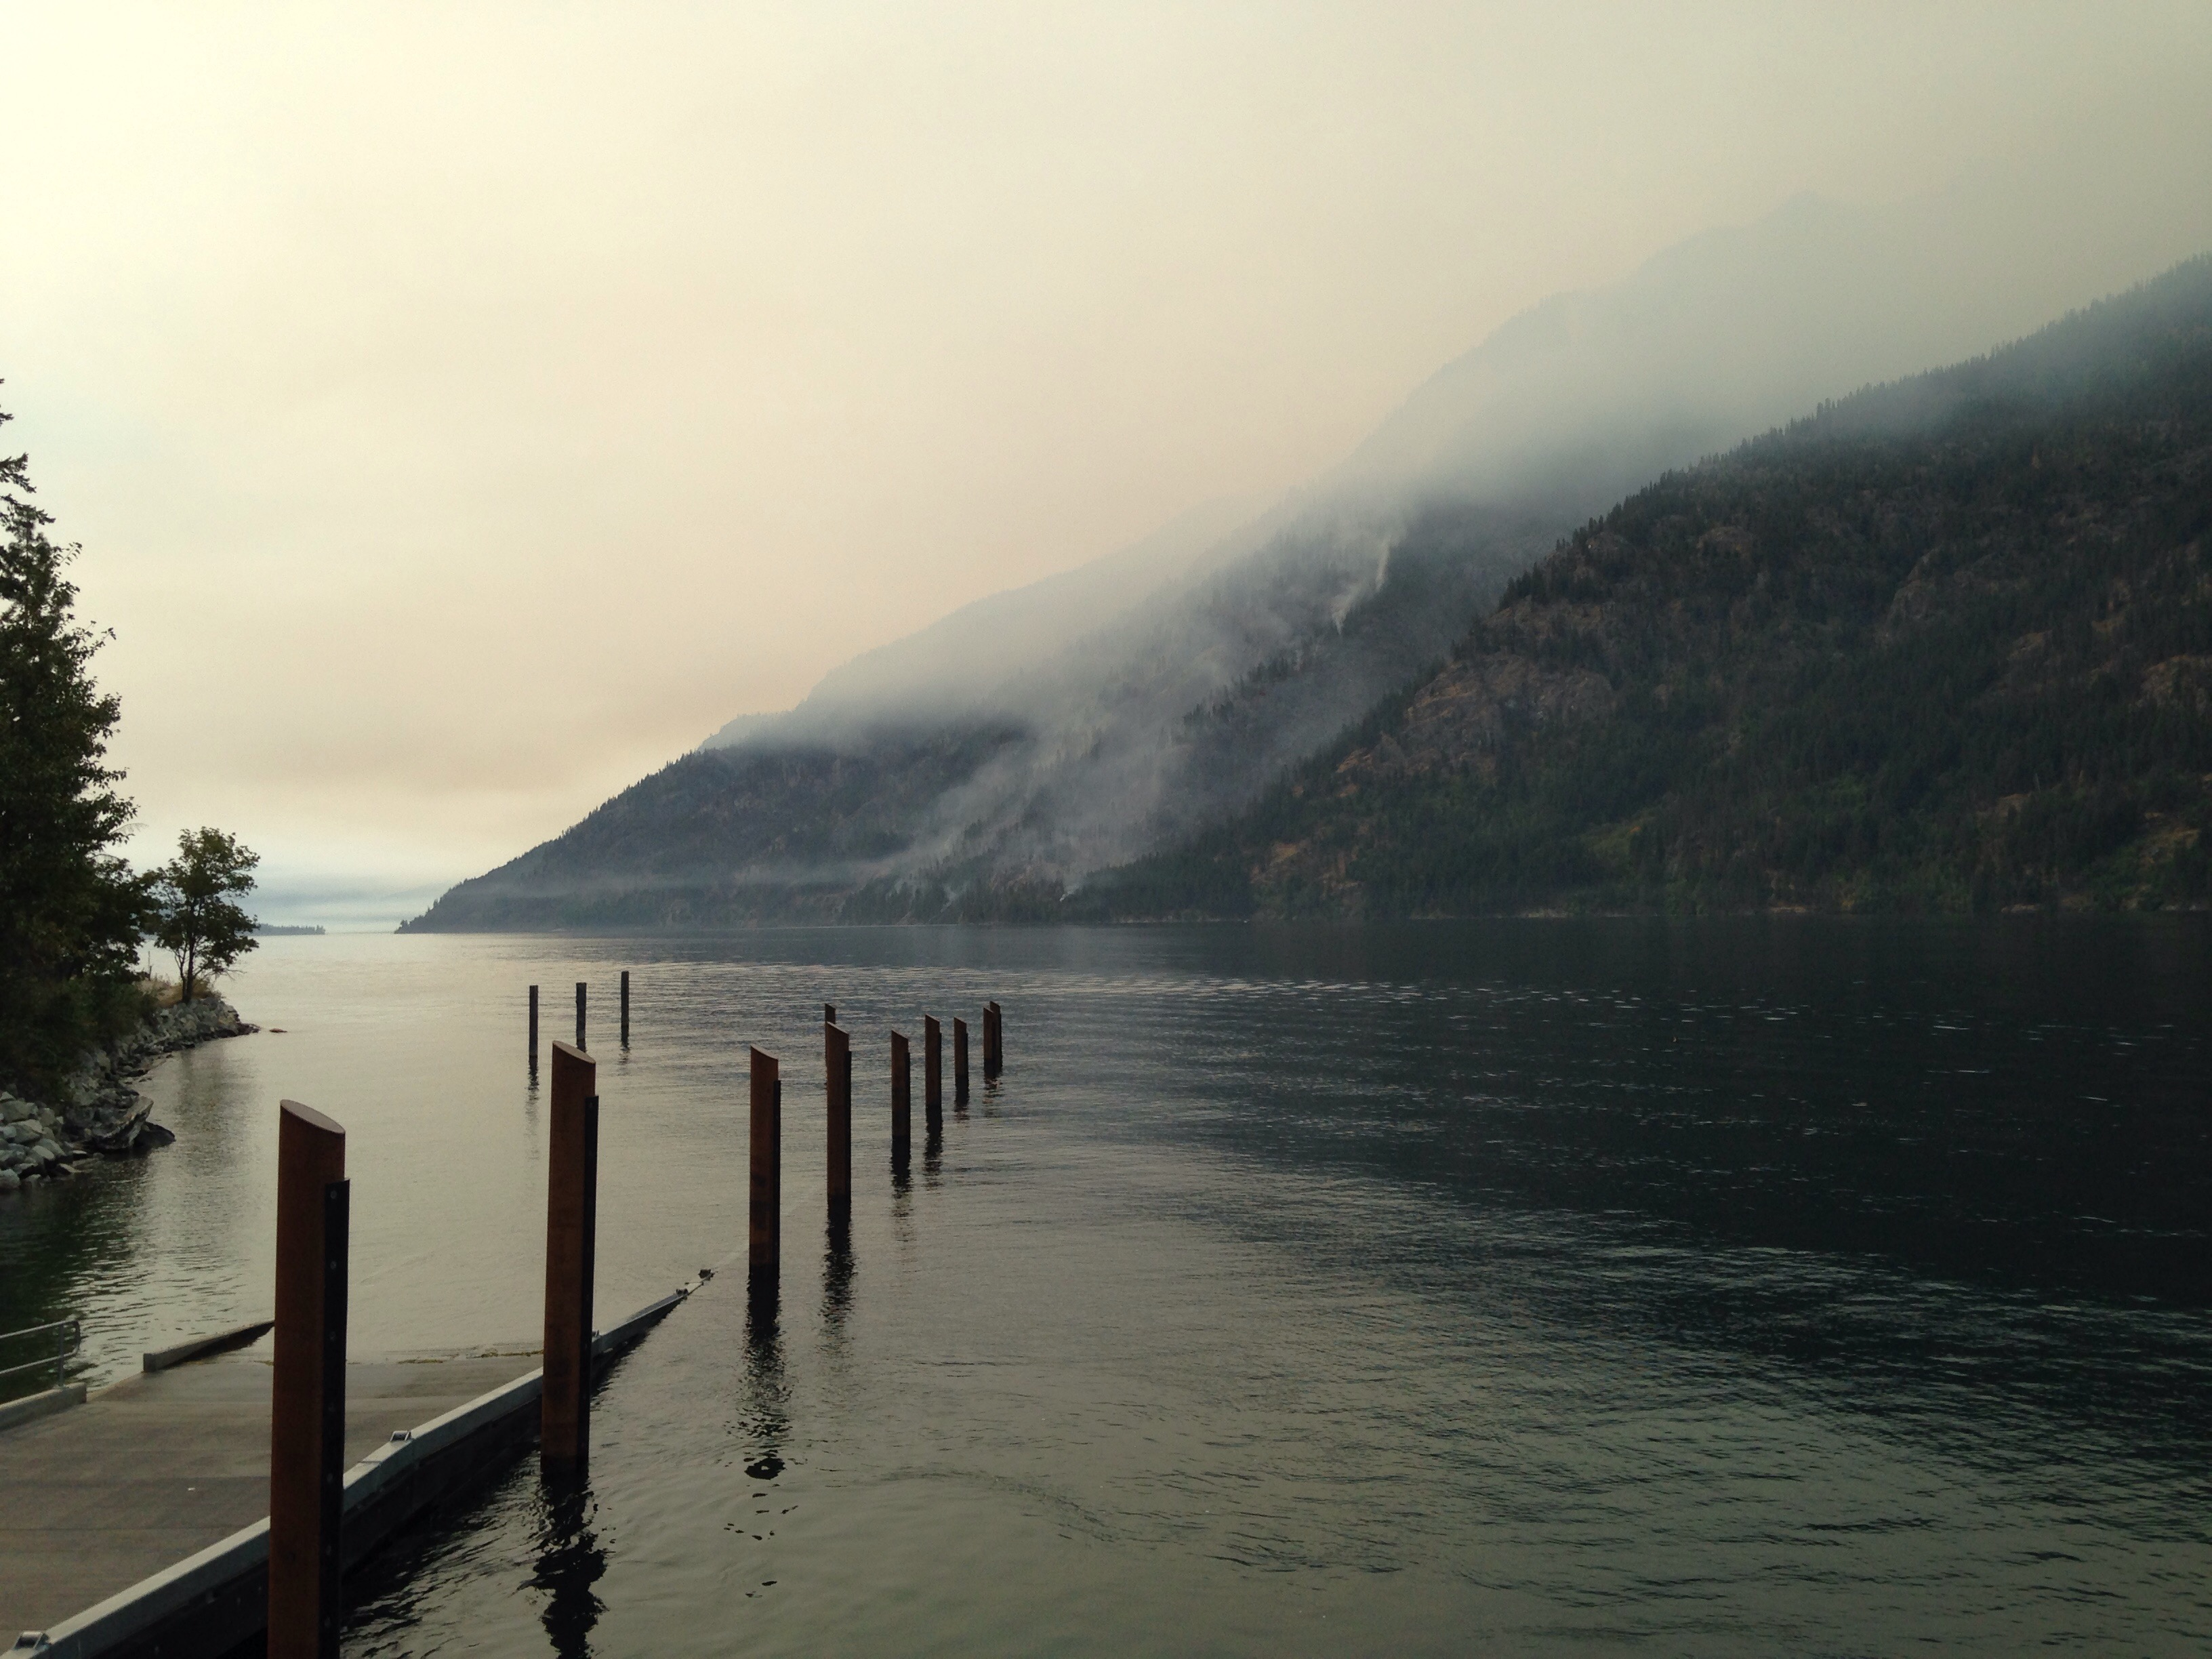 Caption: The view from Stehekin